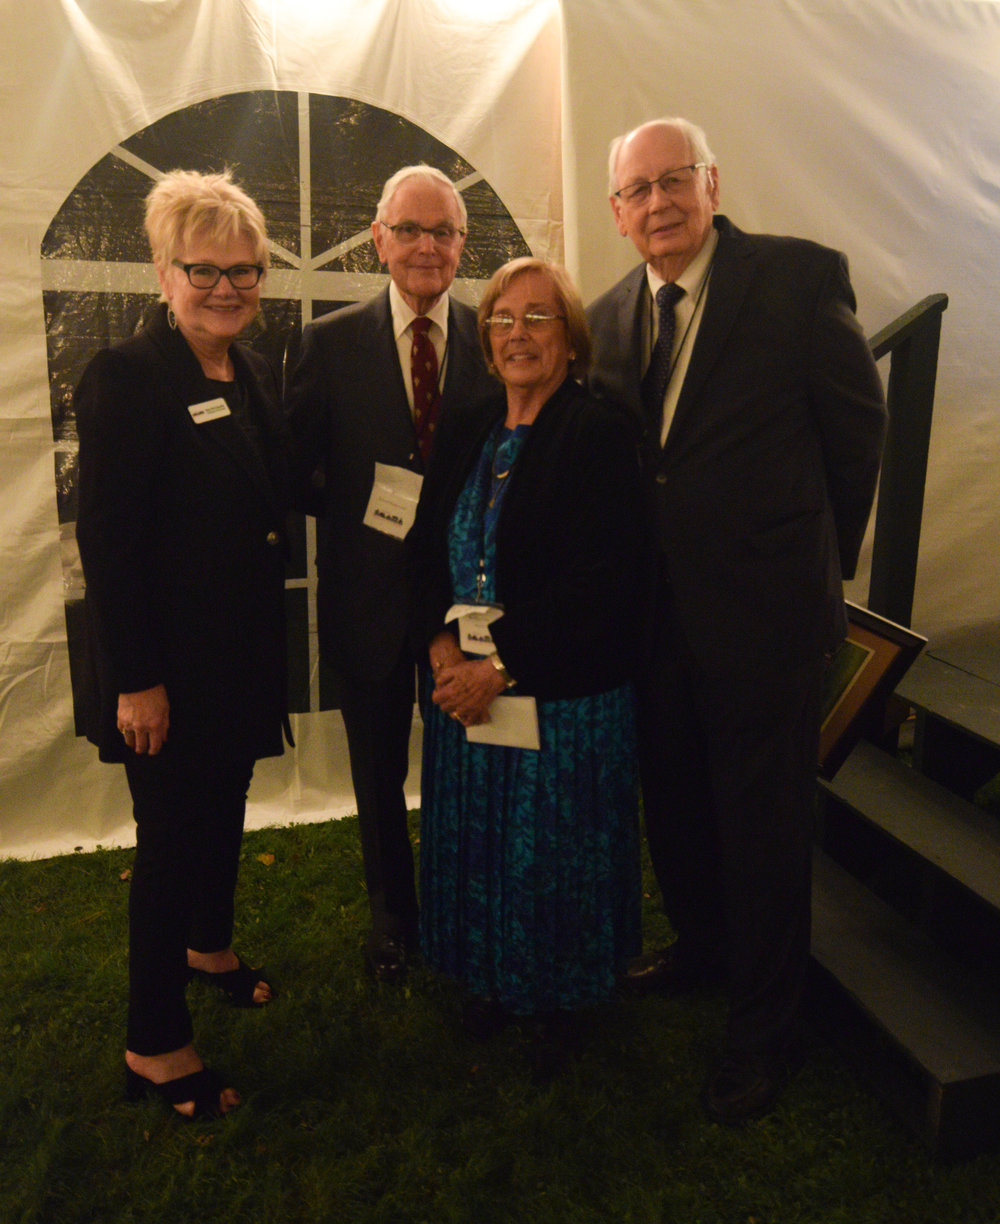 Historic Huguenot Street Board Chair Mary Etta Schneider, 2016 Honoree Robert Hasbrouck, and 2017 Honorees Susanna and David Lent at the Fall Harvest Celebration, Historic Huguenot Street, New Paltz, NY. Photo by Kevin Venkatesh, 2017.